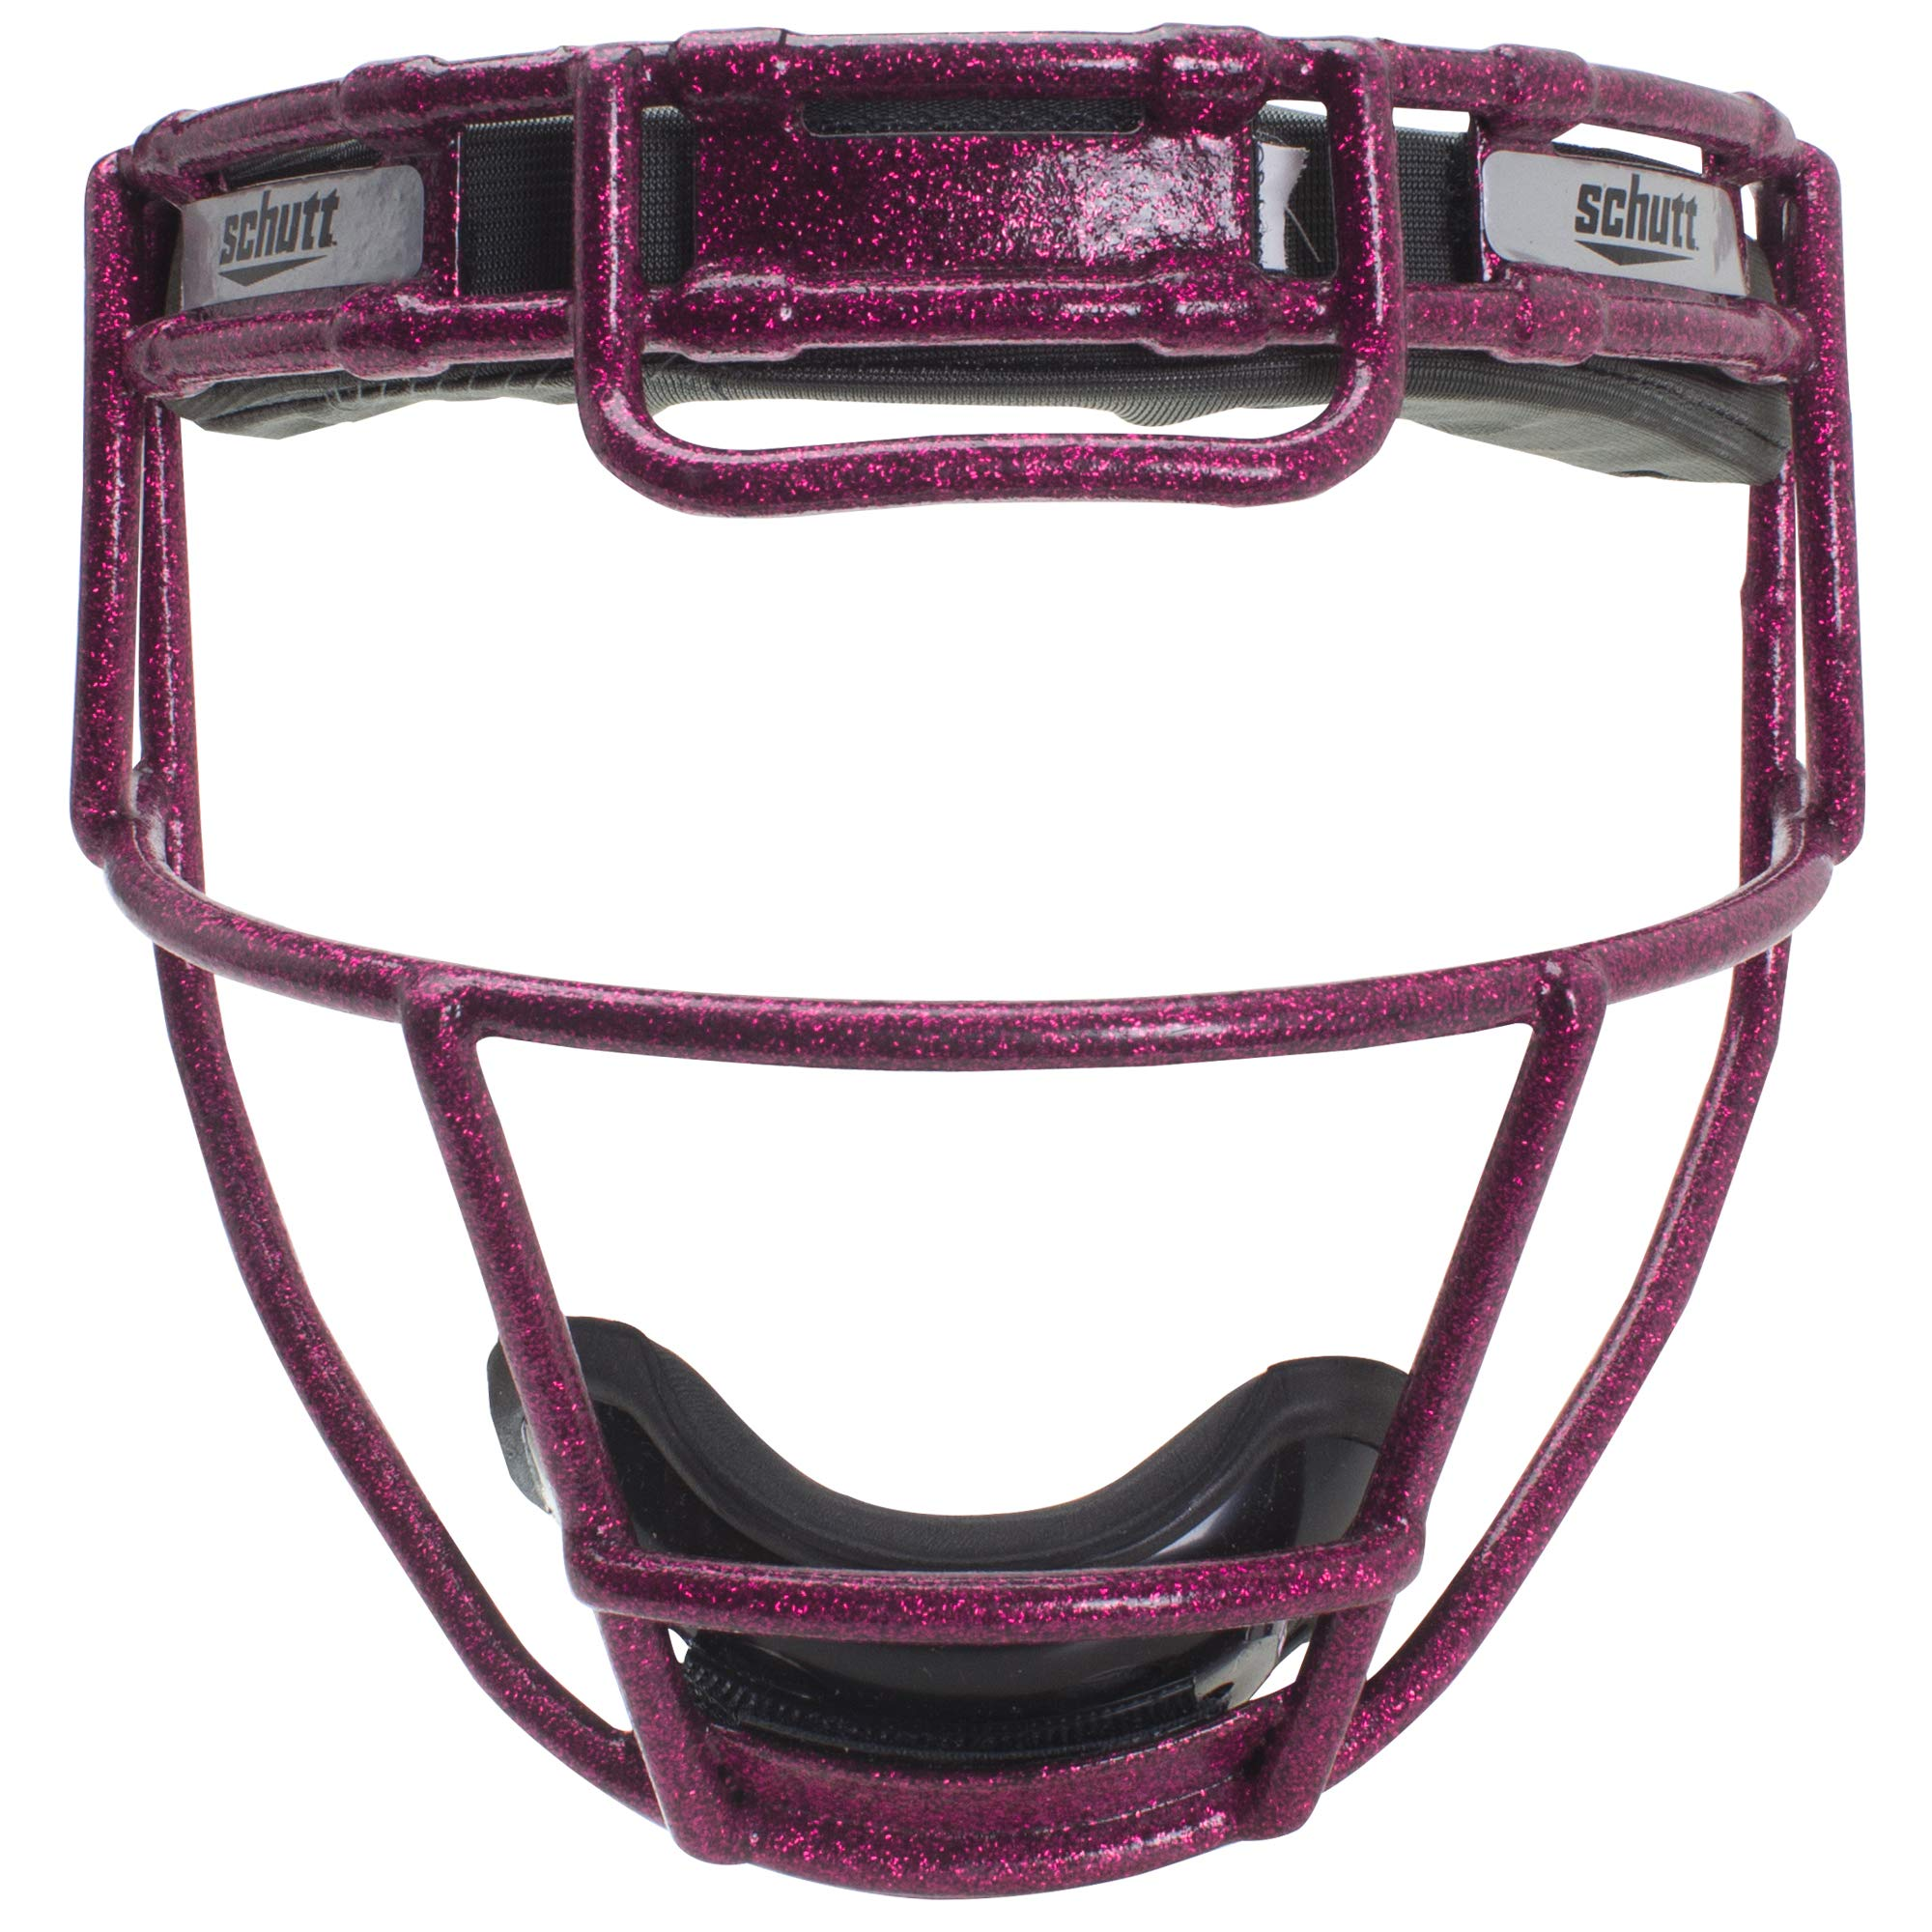 Schutt Sports Titanium Softball Fielders Guard by Schutt